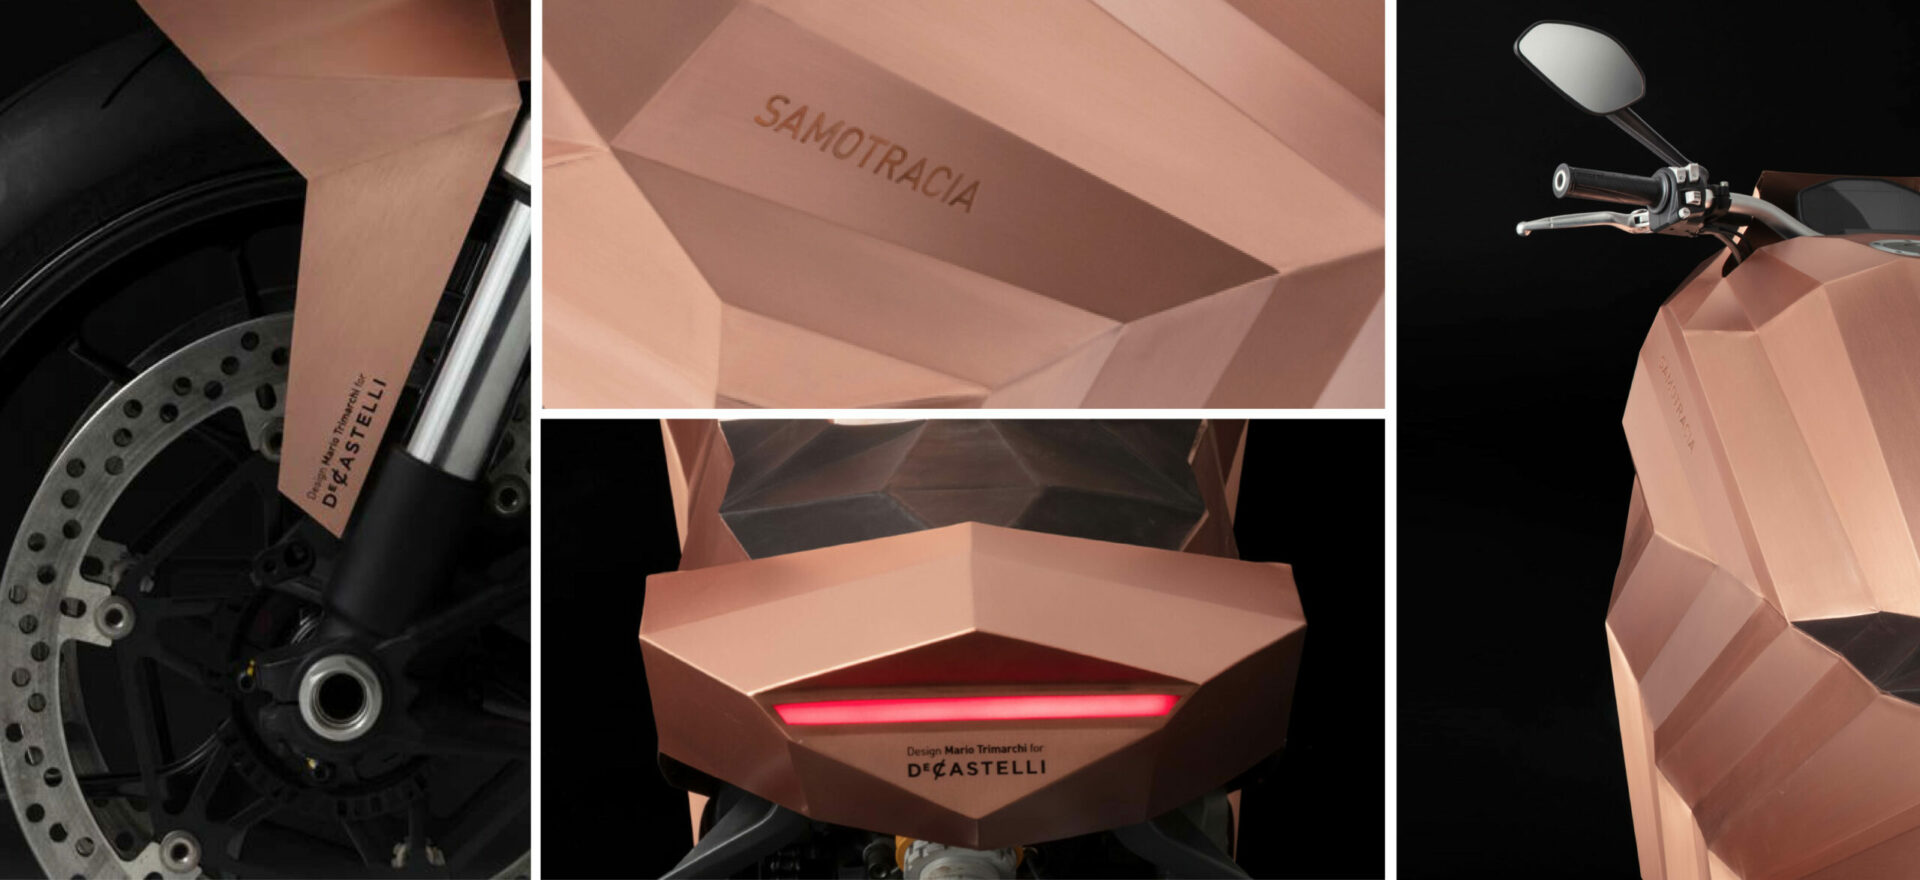 Four close up images of a copper motorbike built on a Ducati Monster chassis in a black background with lights on.